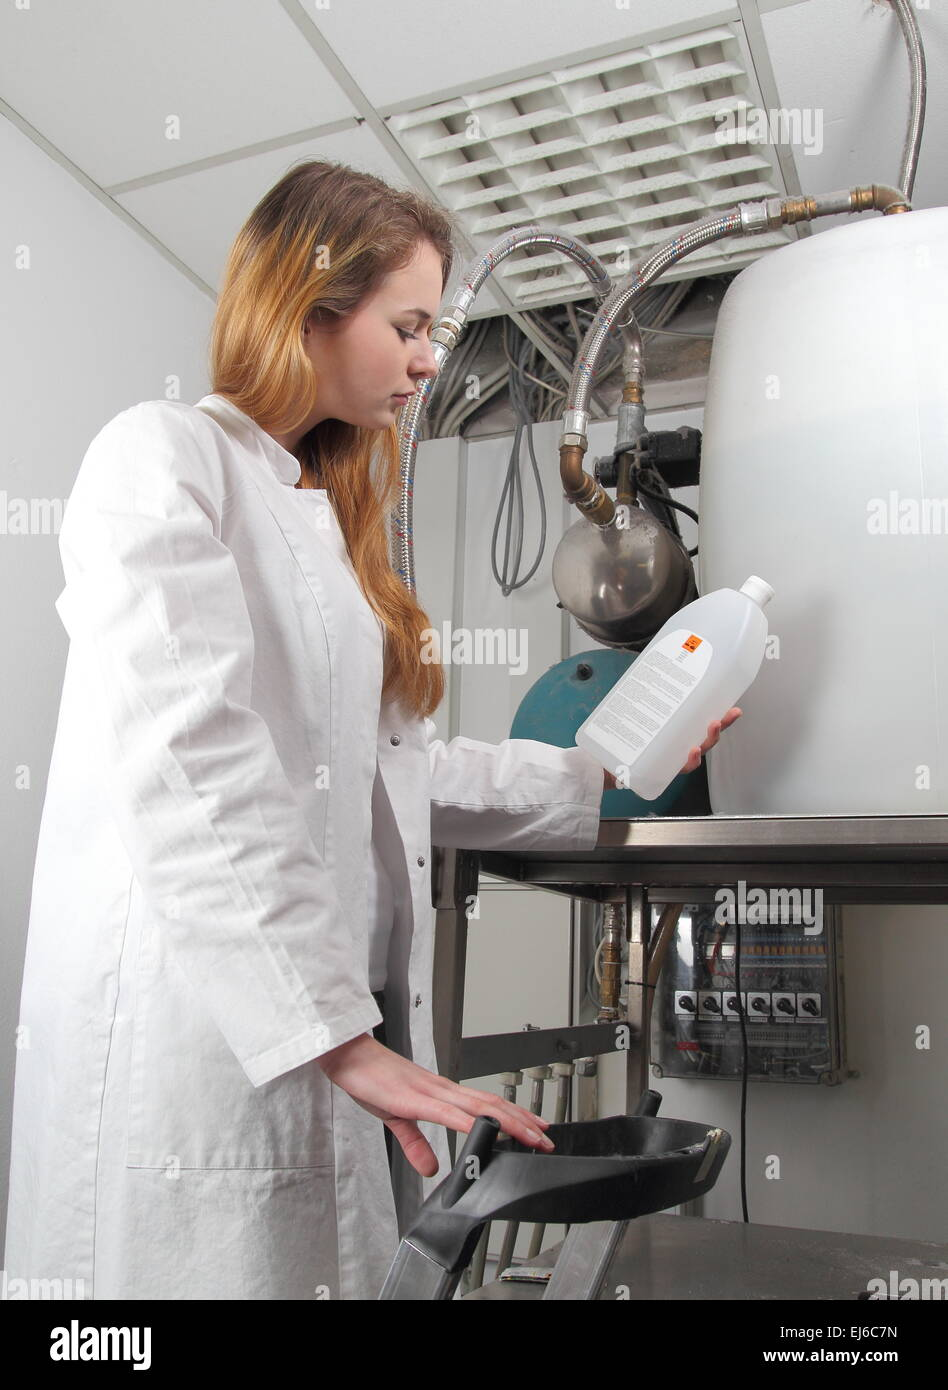 A Woman at a  plant with chemicals - Stock Image